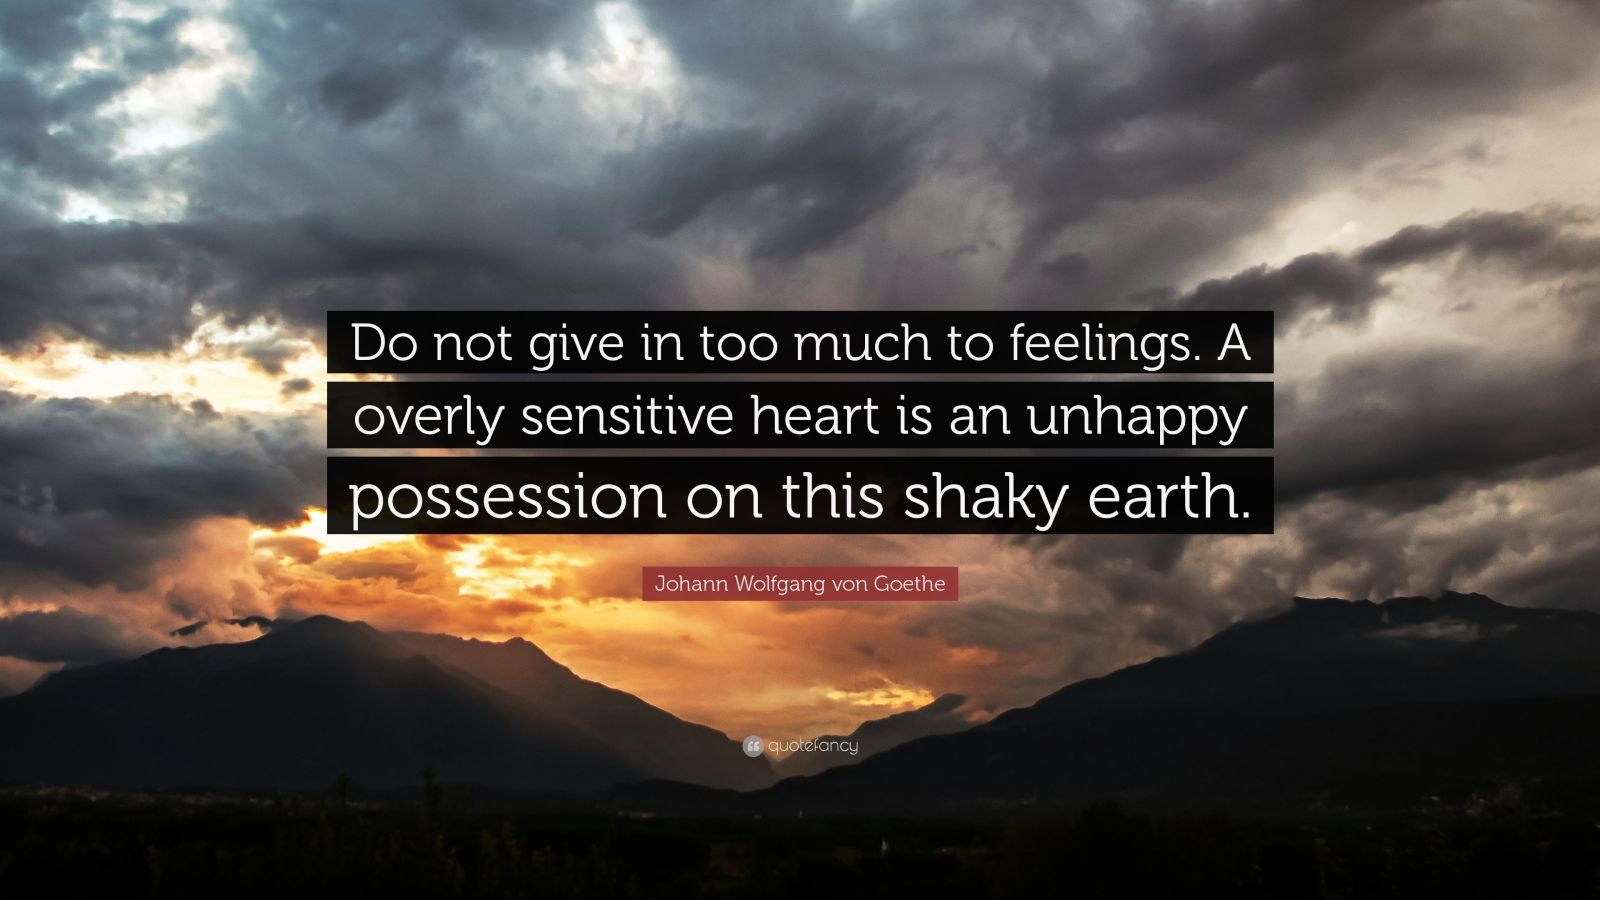 """Johann Wolfgang von Goethe Quote: """"Do not give in too much to feelings. A overly sensitive heart is an unhappy possession on this shaky earth."""""""